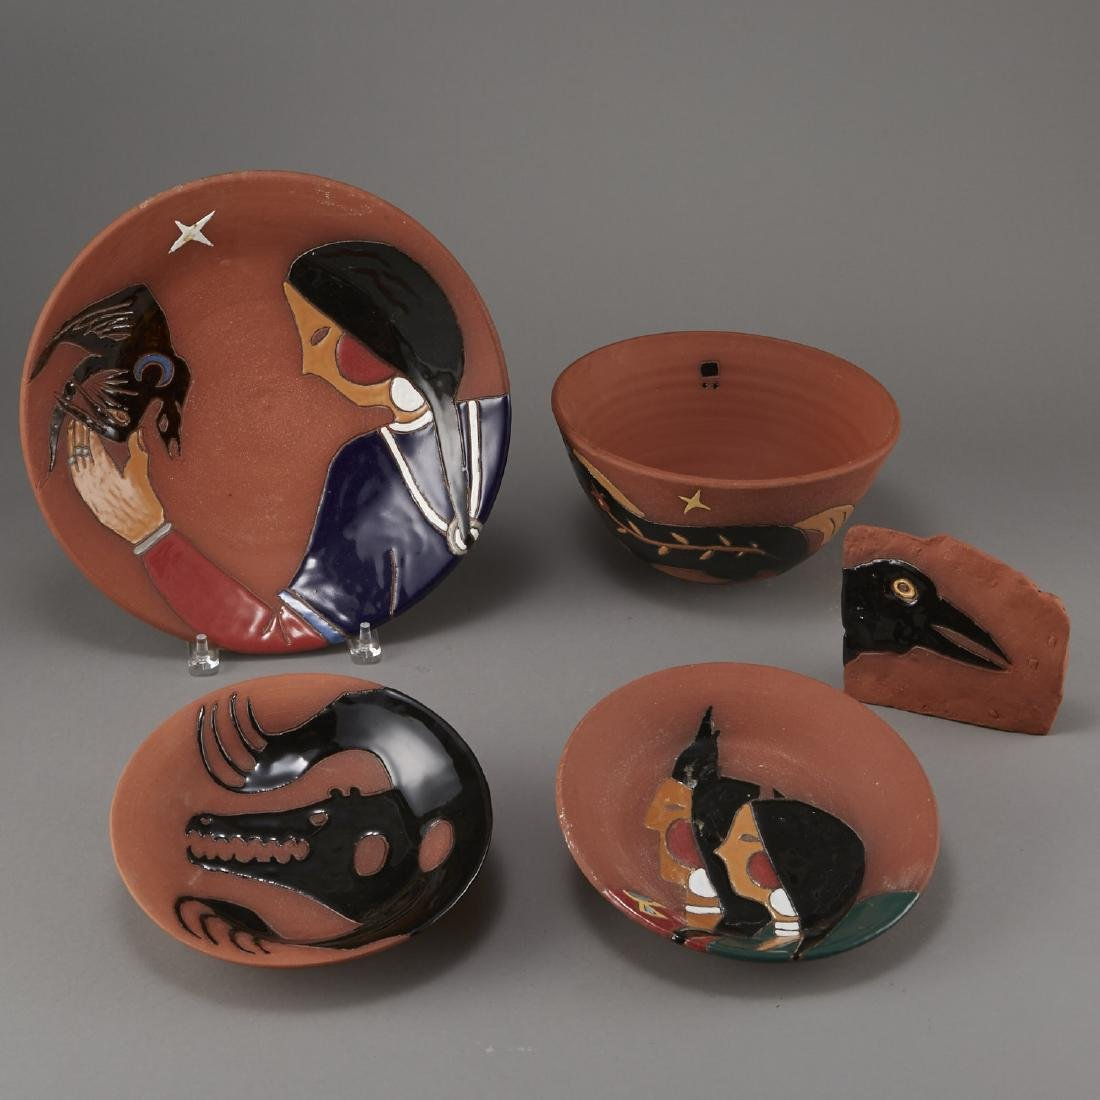 Group of 5 Glen LaFontaine Pottery pieces - 3